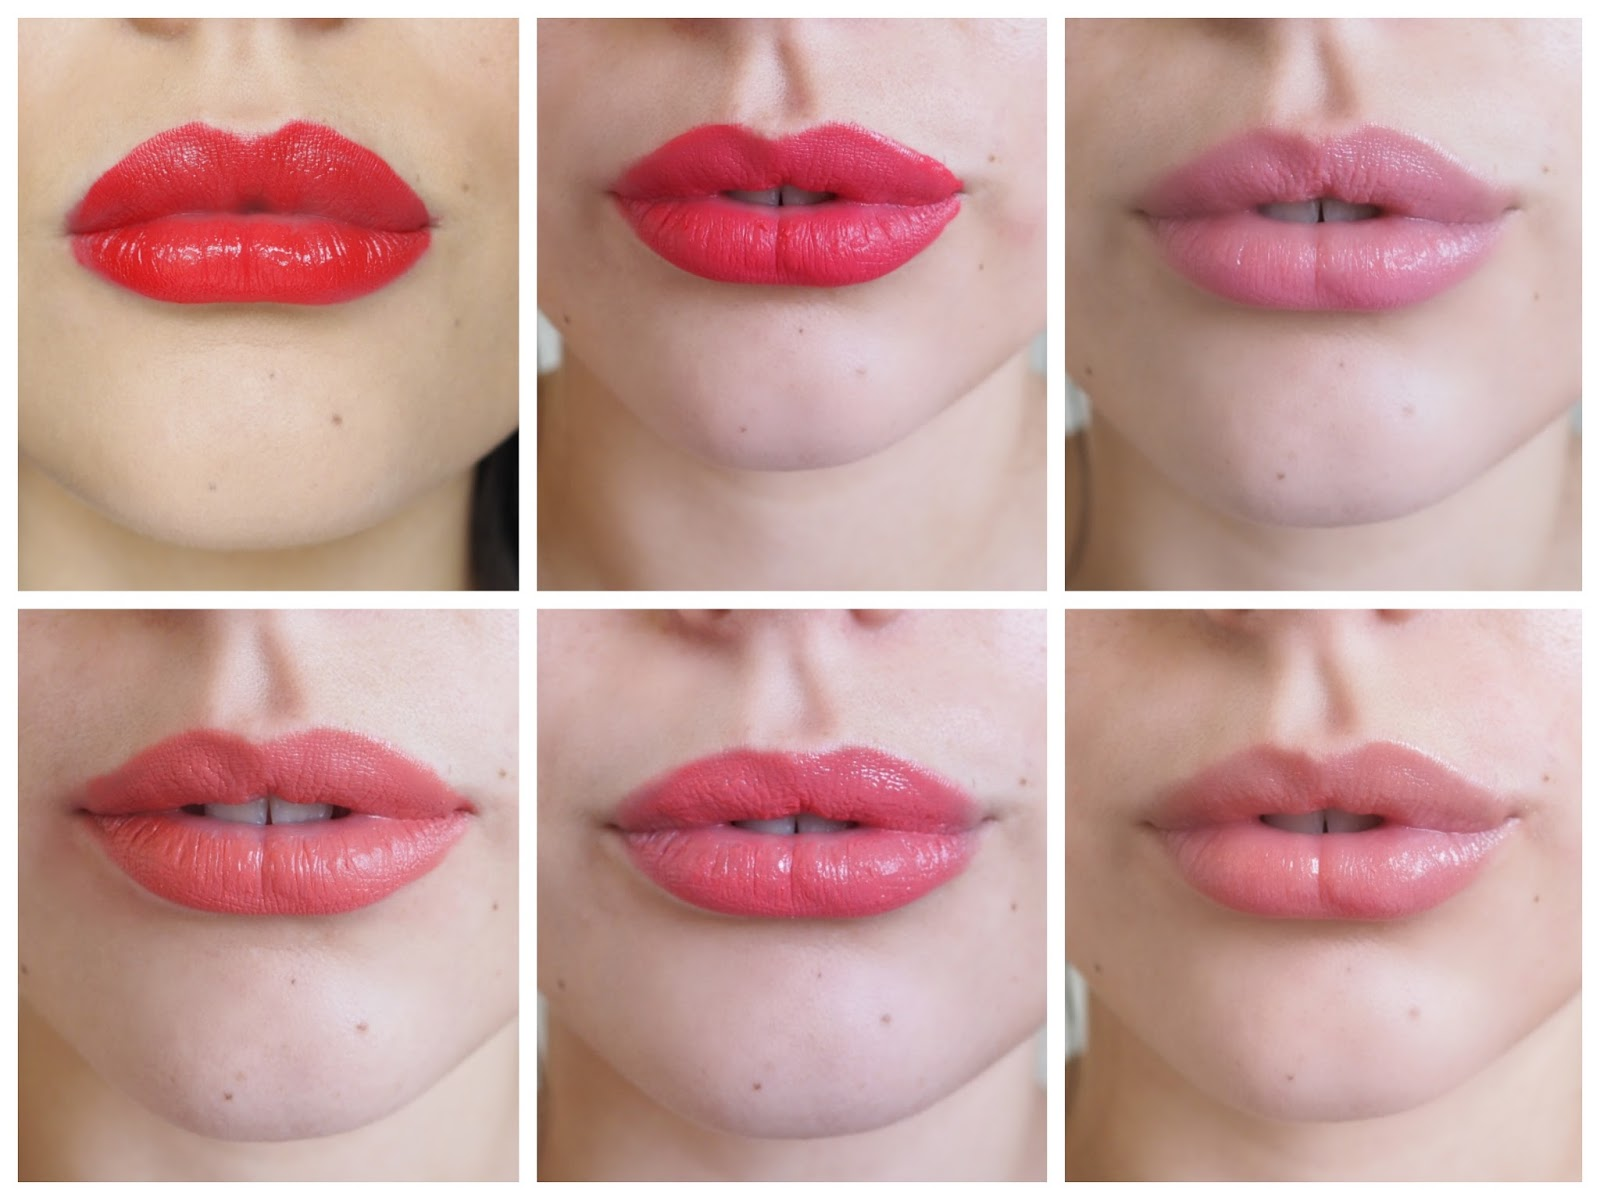 It's Cultured Spring/Summer Lip Colours Swatches on Lips